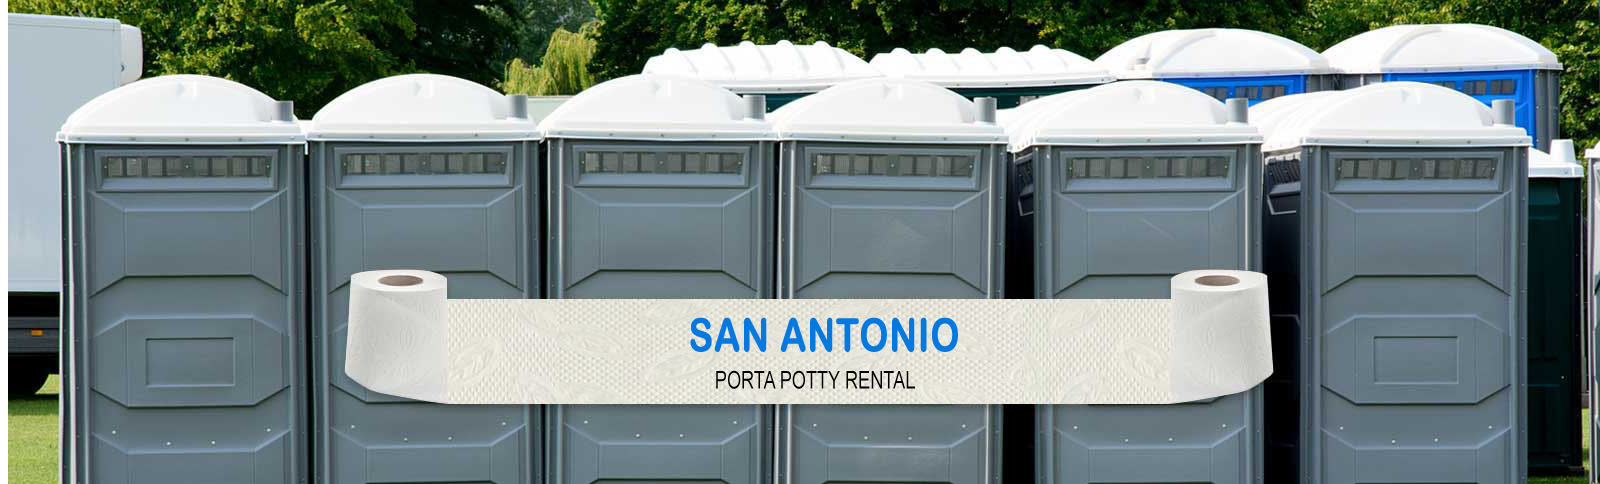 Universal City Porta Potty Rental